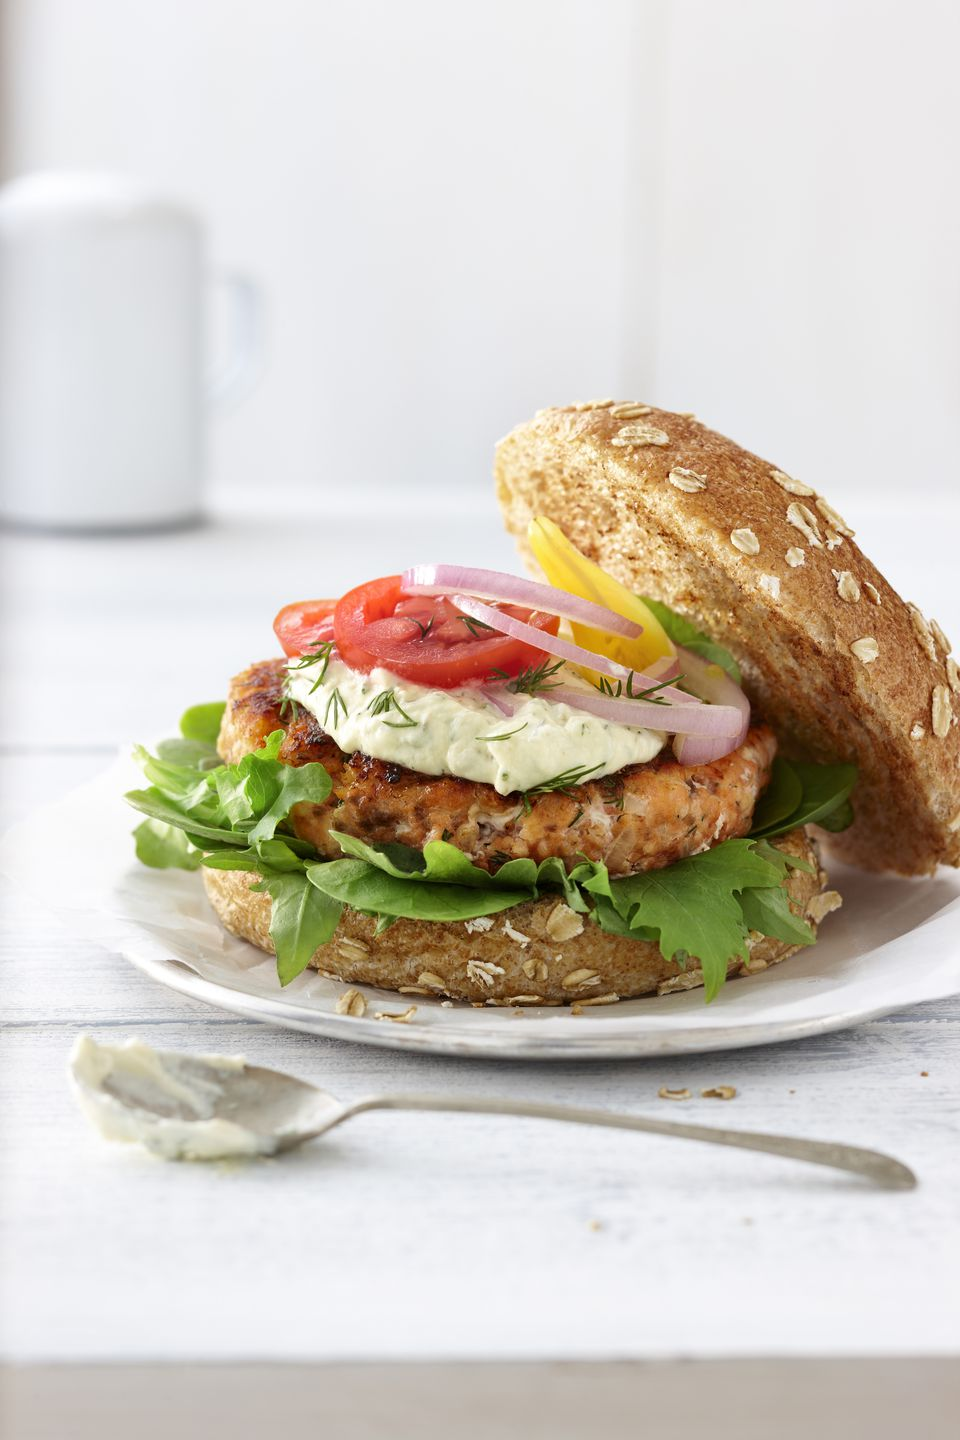 Salmon burger on whole wheat bun with lettuce, red onion, red tomatoes, yellow tomatoes, sauce, and fresh dill